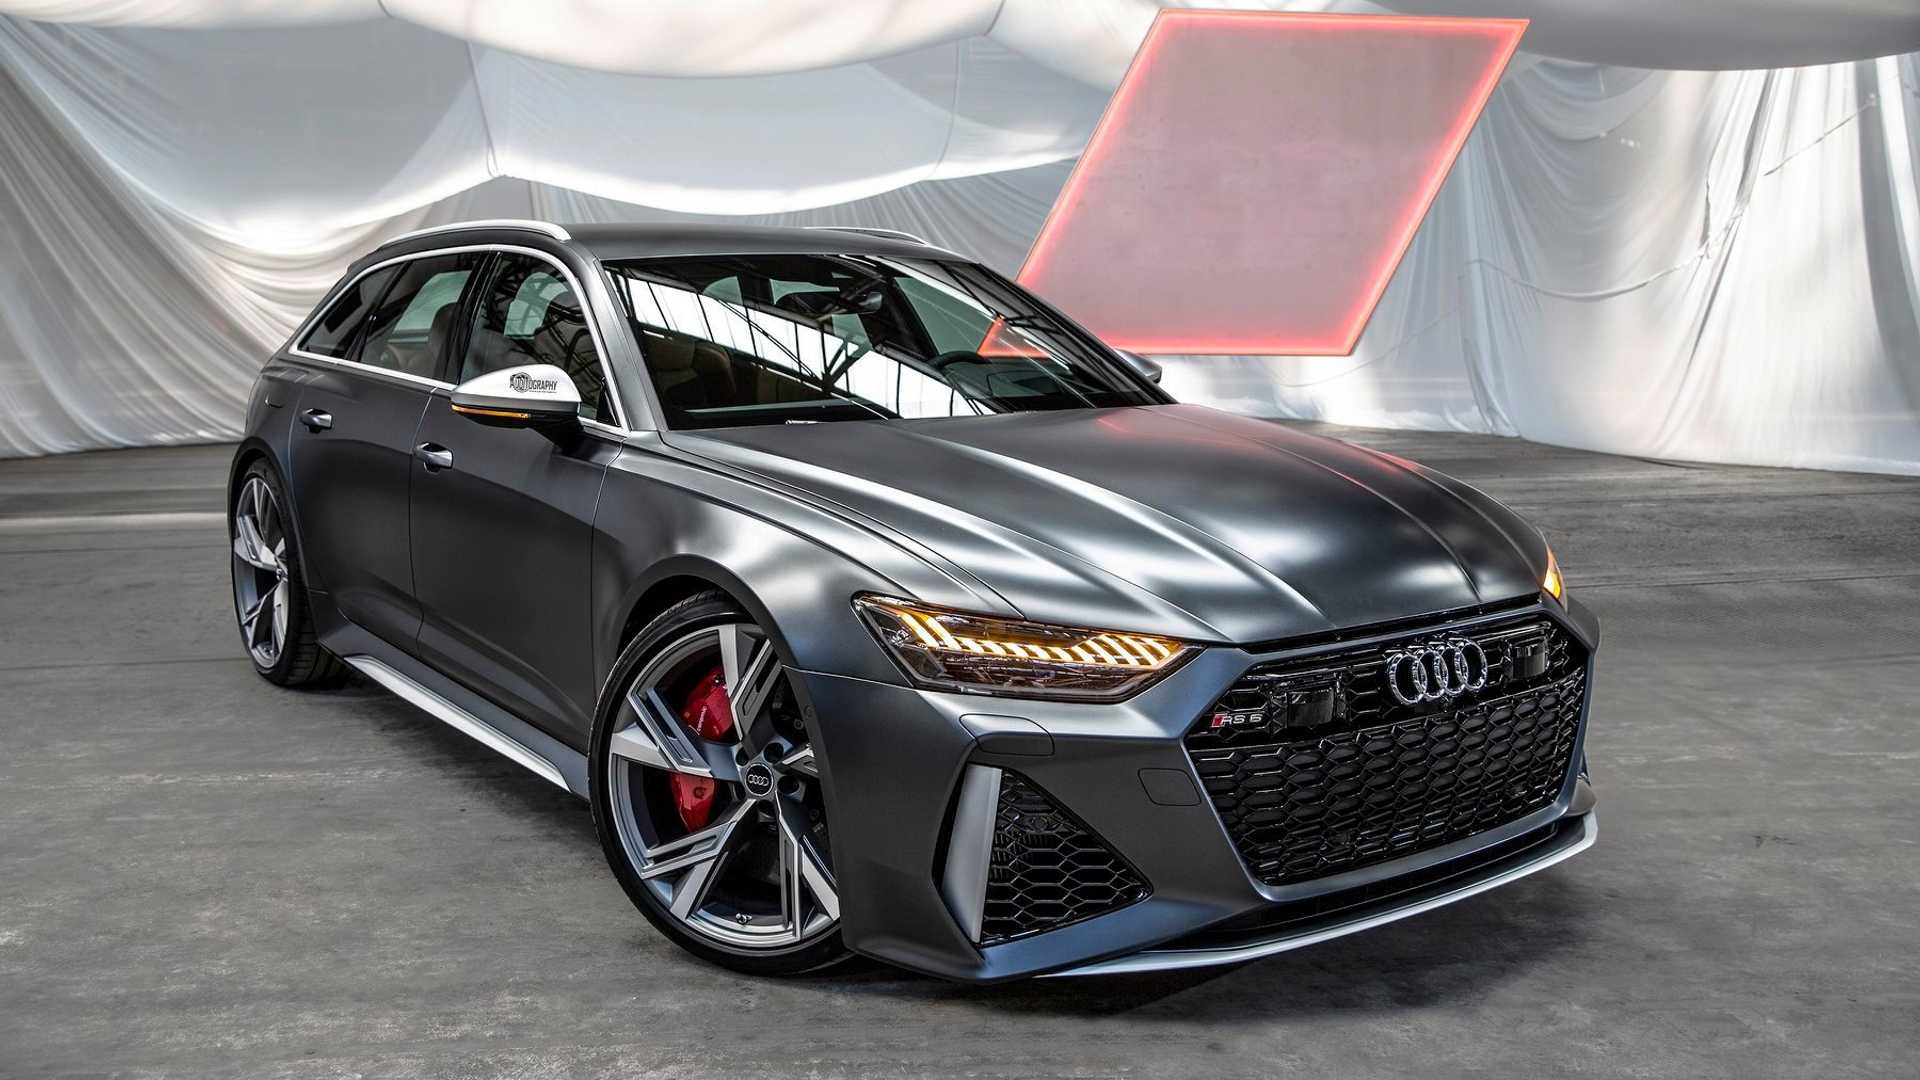 2020 Audi Rs6 Avant Video Illustrates Our Love For Super Wagons